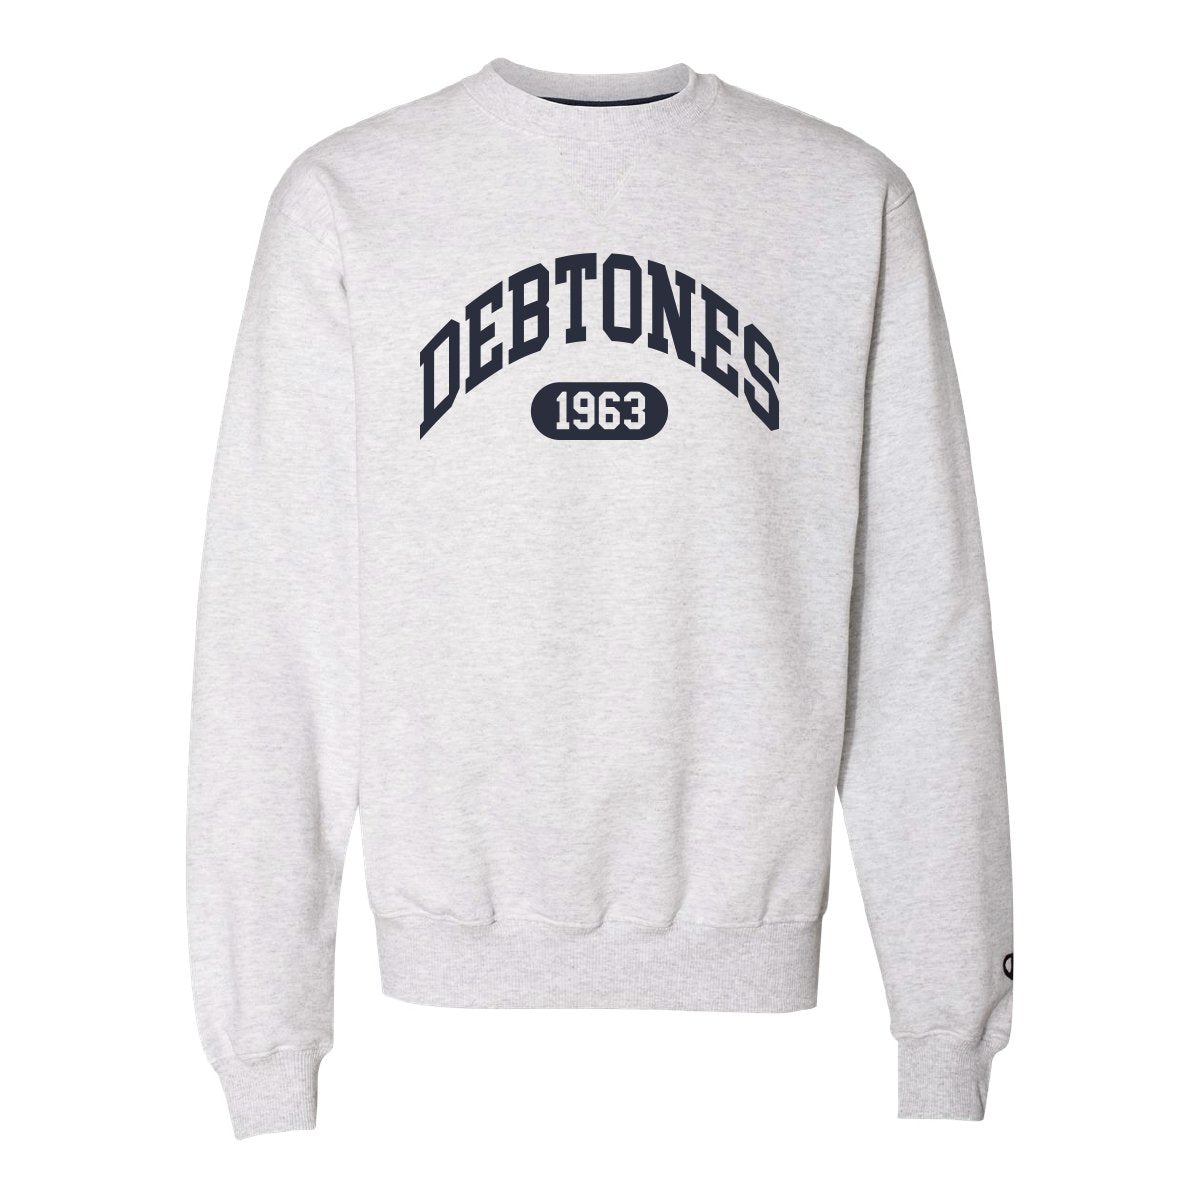 Debtones Gray Champion Crewneck Sweatshirt